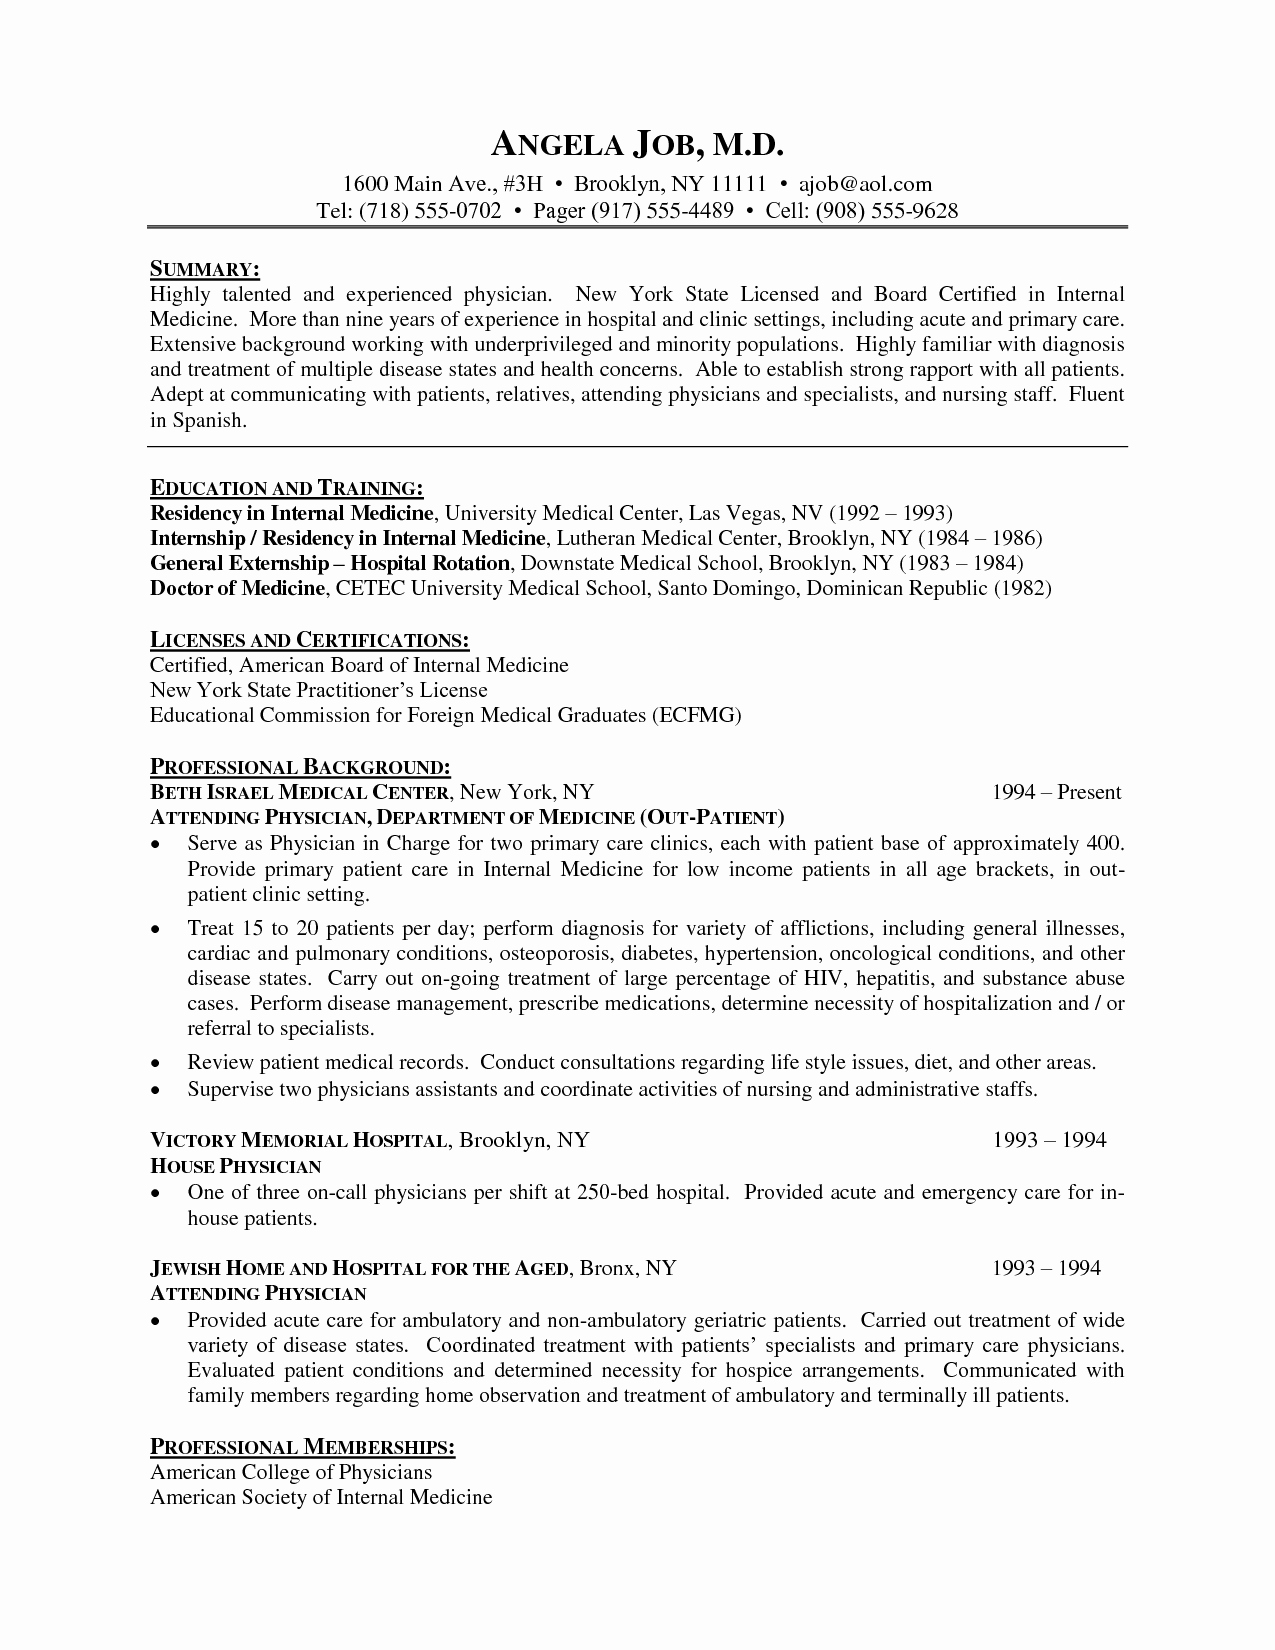 Resume Template Medical Doctor Cv Resume Physician Cv